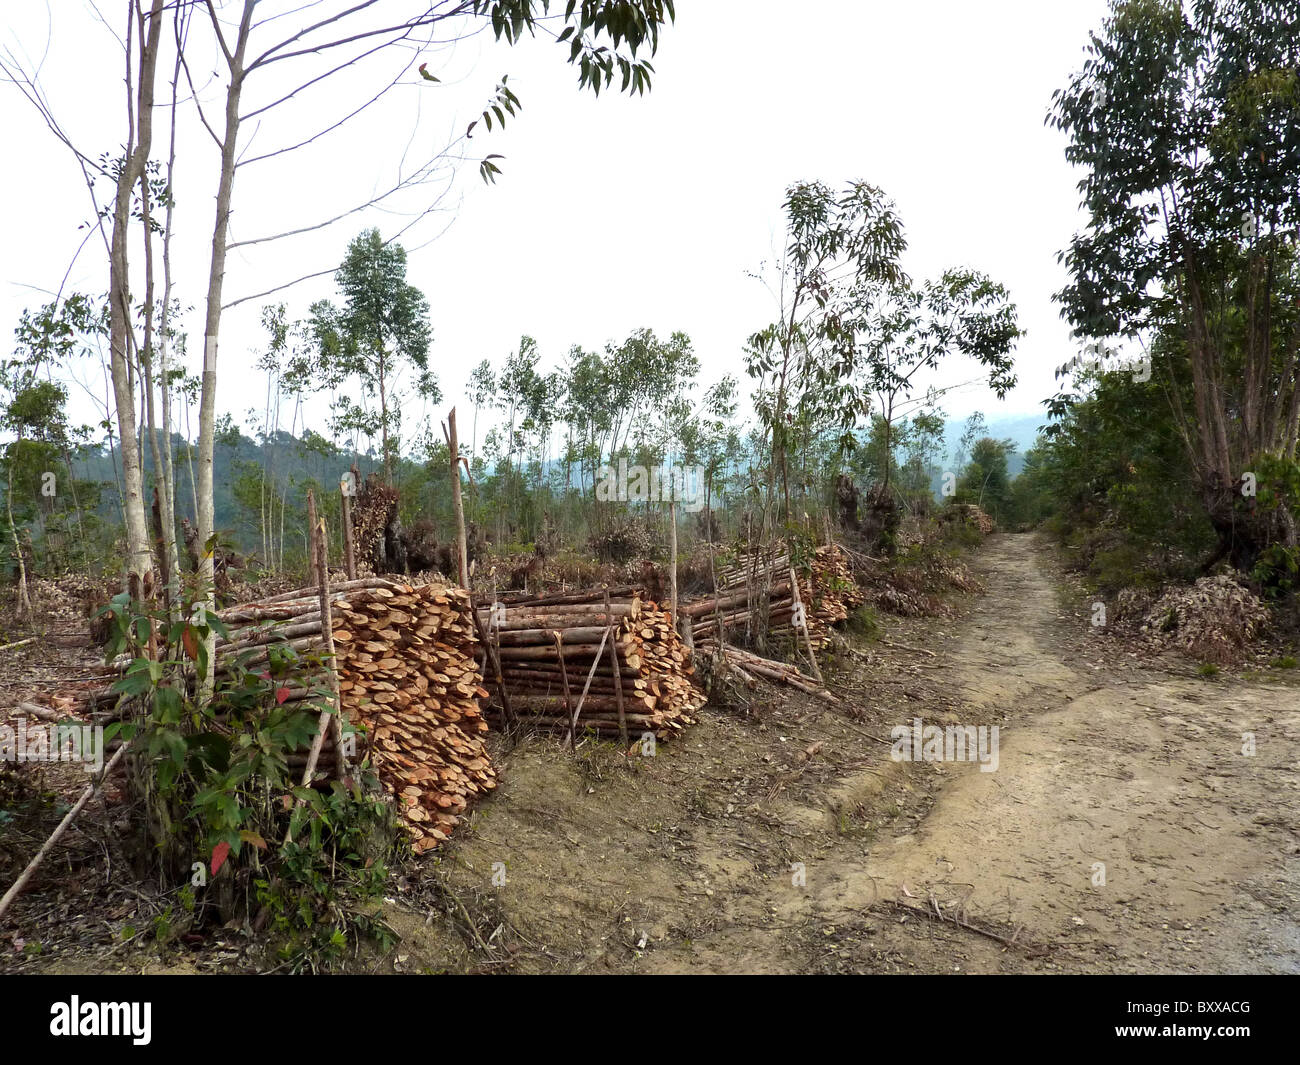 MADAGASCAR  Eucalyptus trees harvested for cooking and brick furnaces replace native species in many areas. Photo Stock Photo